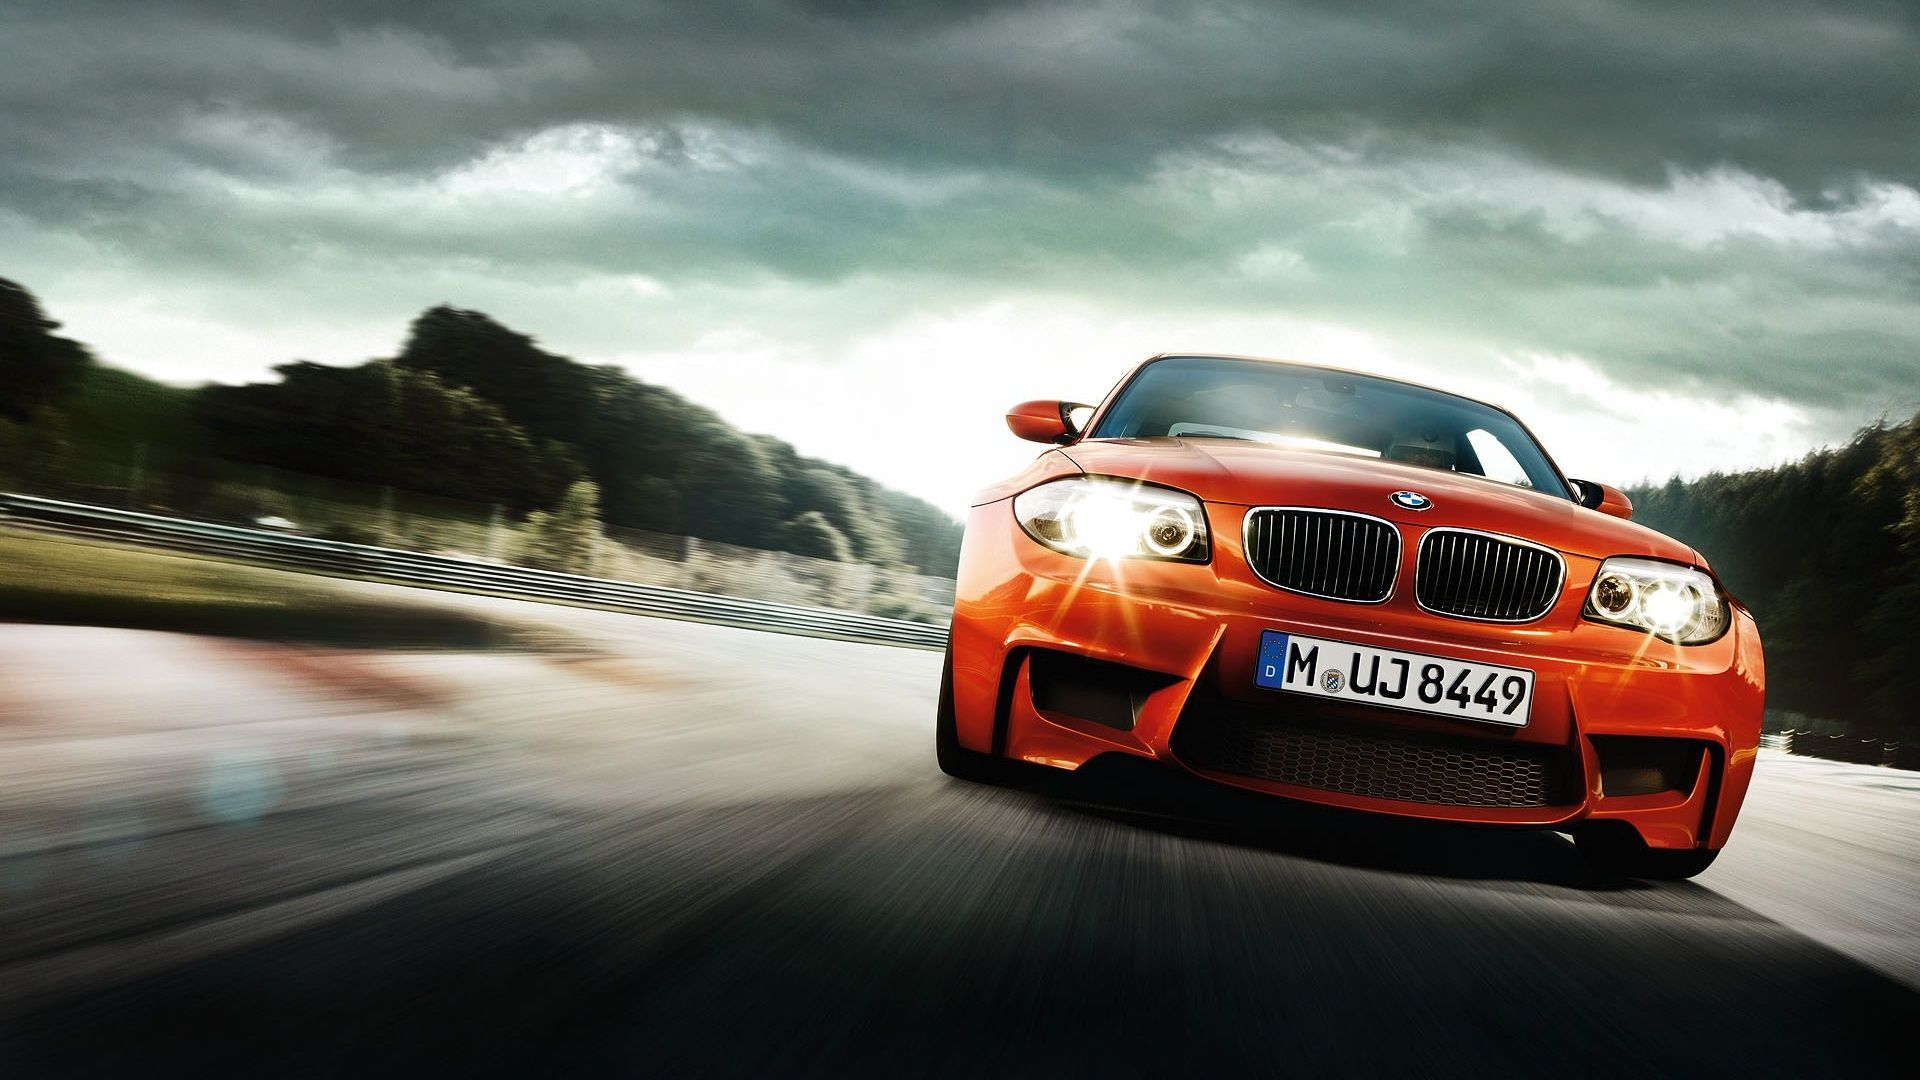 Hd wallpaper of cars - Best Bmw Wallpapers For Desktop Tablets In Hd For Download